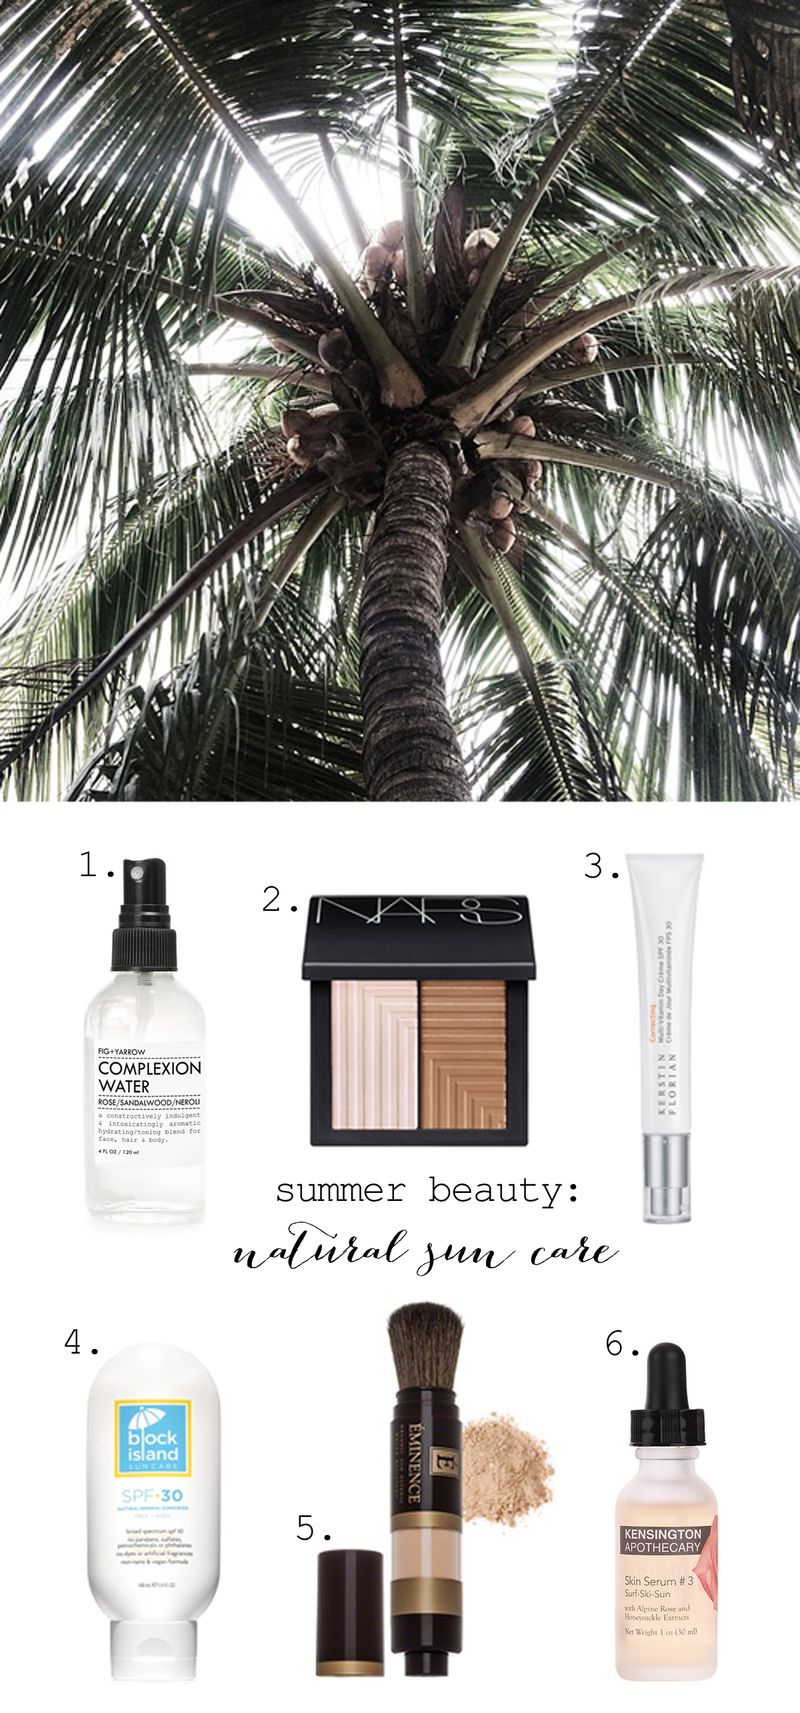 Natural sun protection for summer skincare